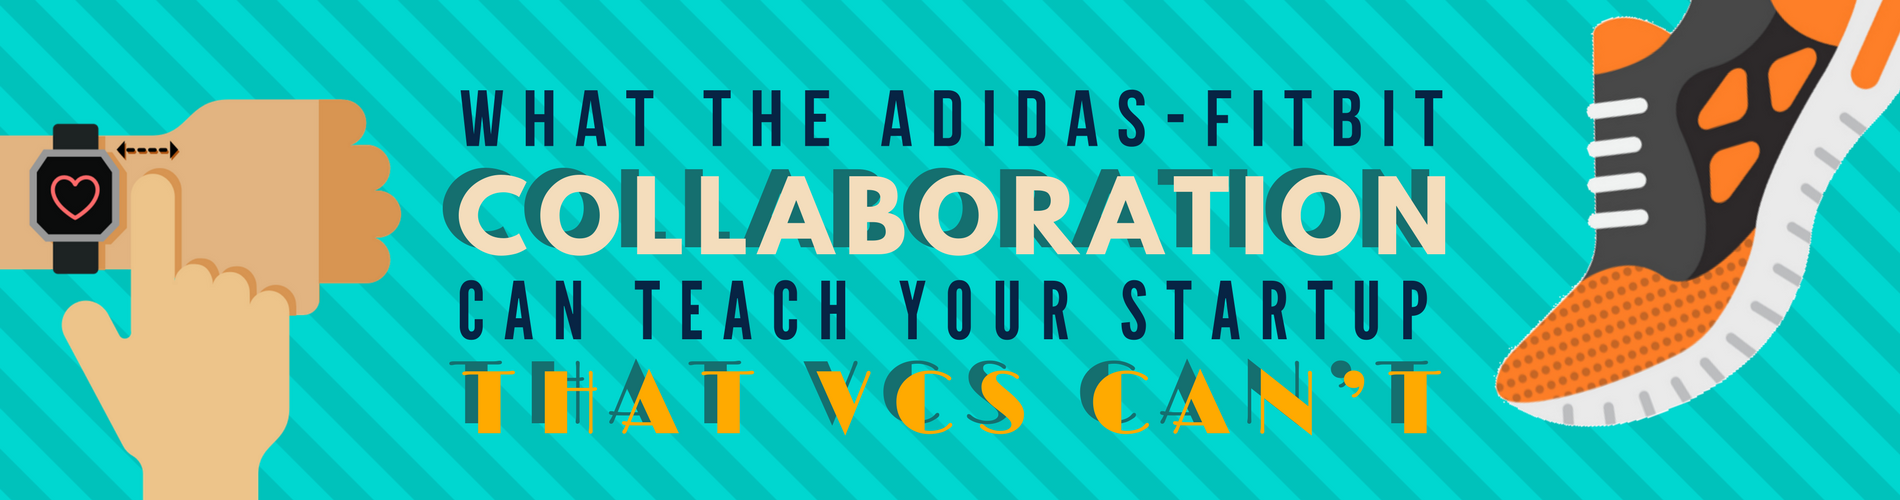 What The Adidas Fitbit Collaboration Can Teach Your Startup That Vcs Ionic Cant Umsl Accelerate Blog